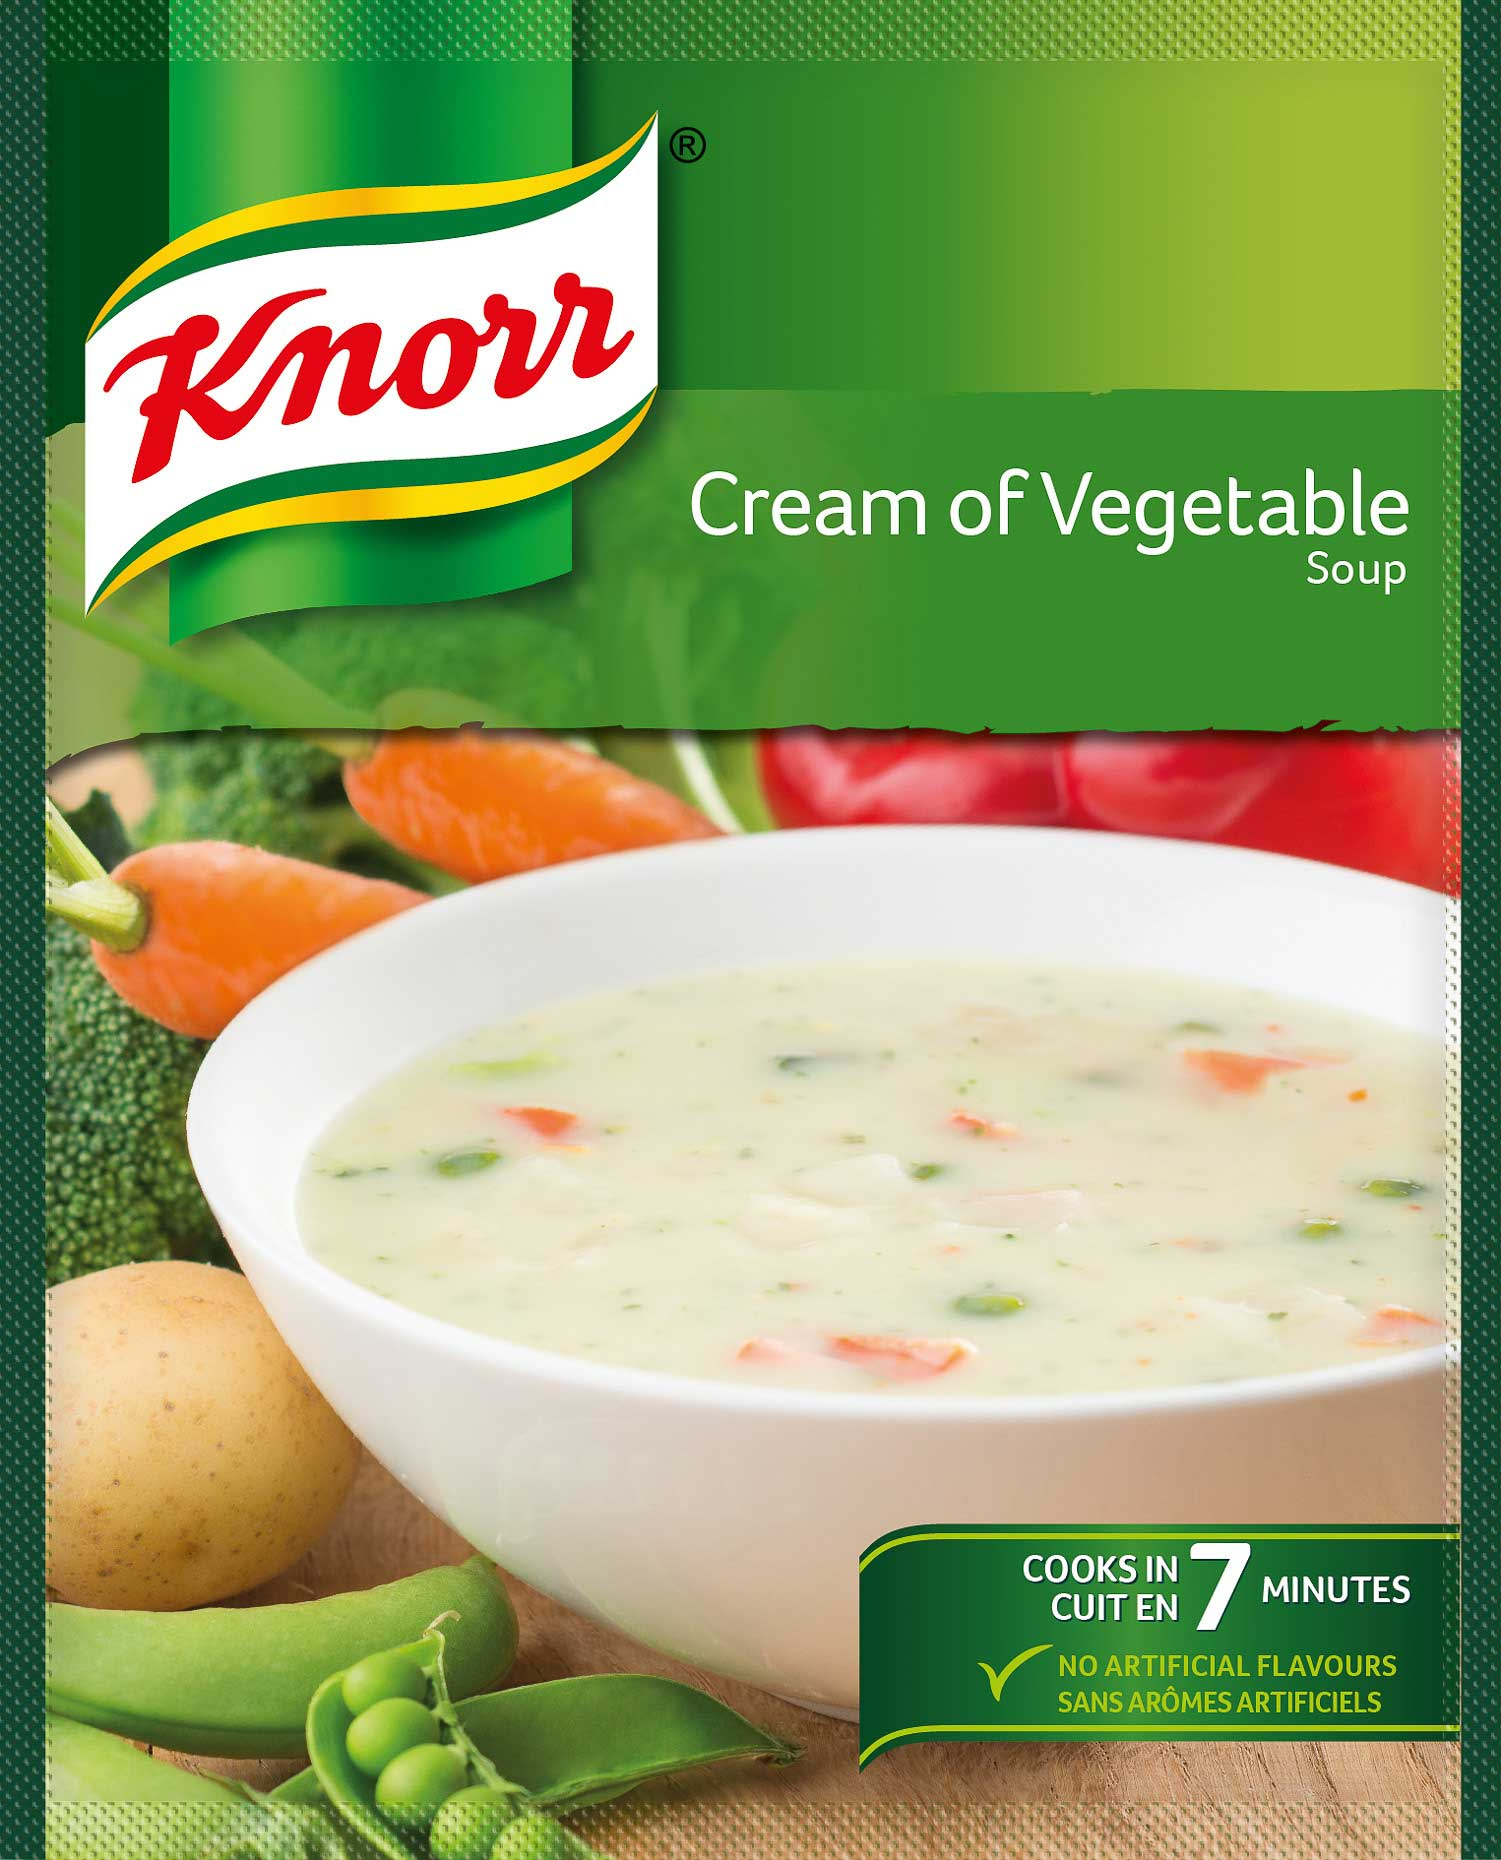 INC231_04_NR_Knorr CAN_Soup_Cream_of_Vegetable_OL